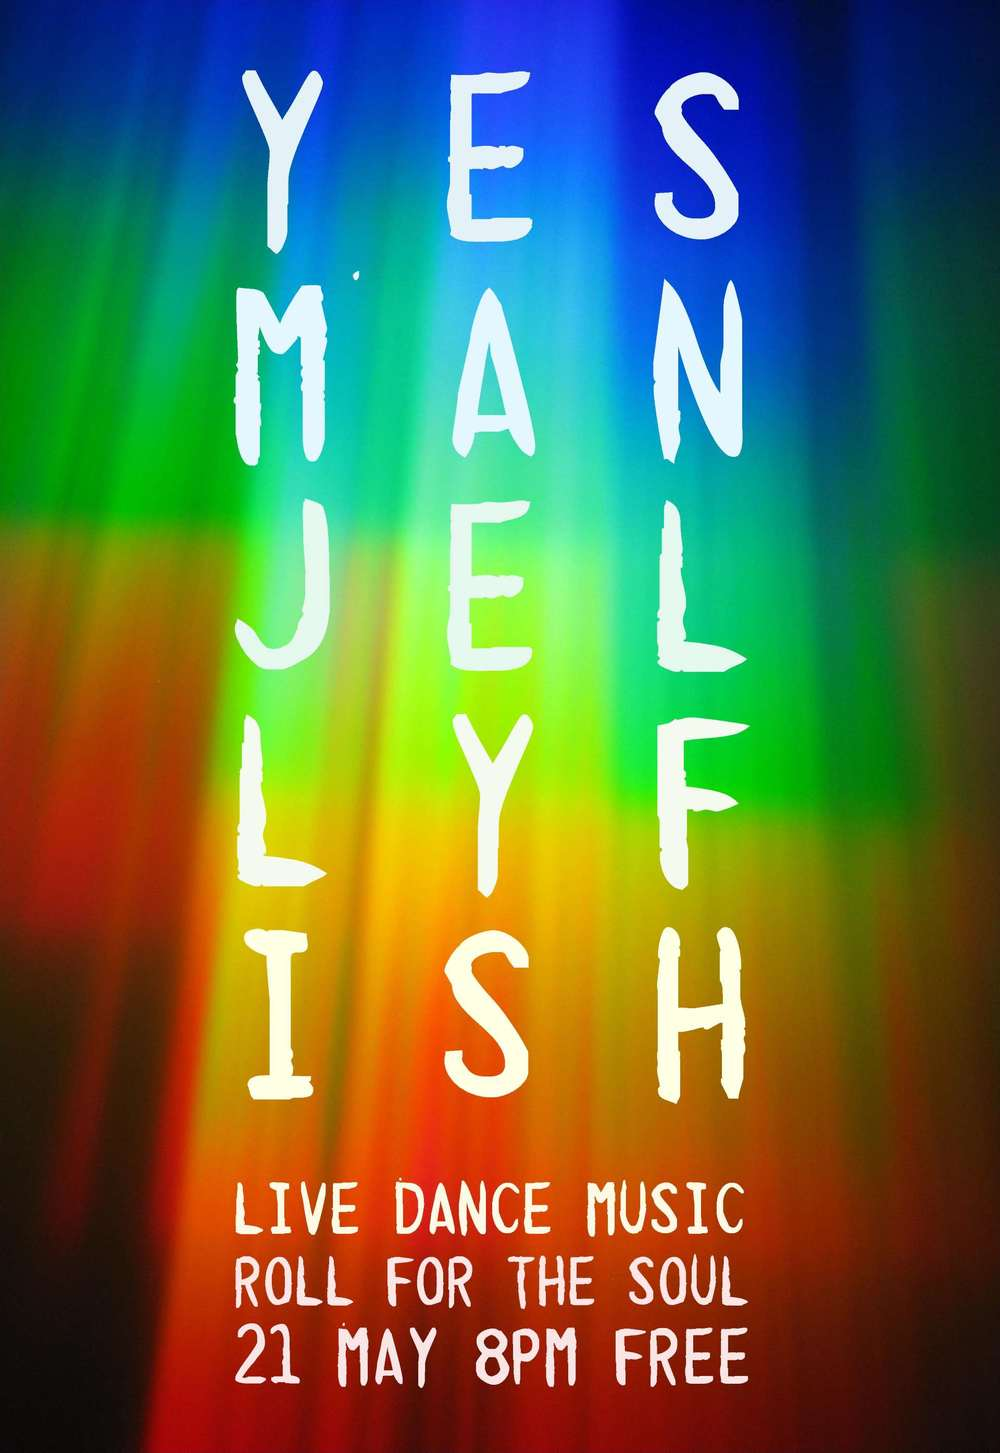 Yes Man Jellyfish Live at Roll For The Soul Official Poster